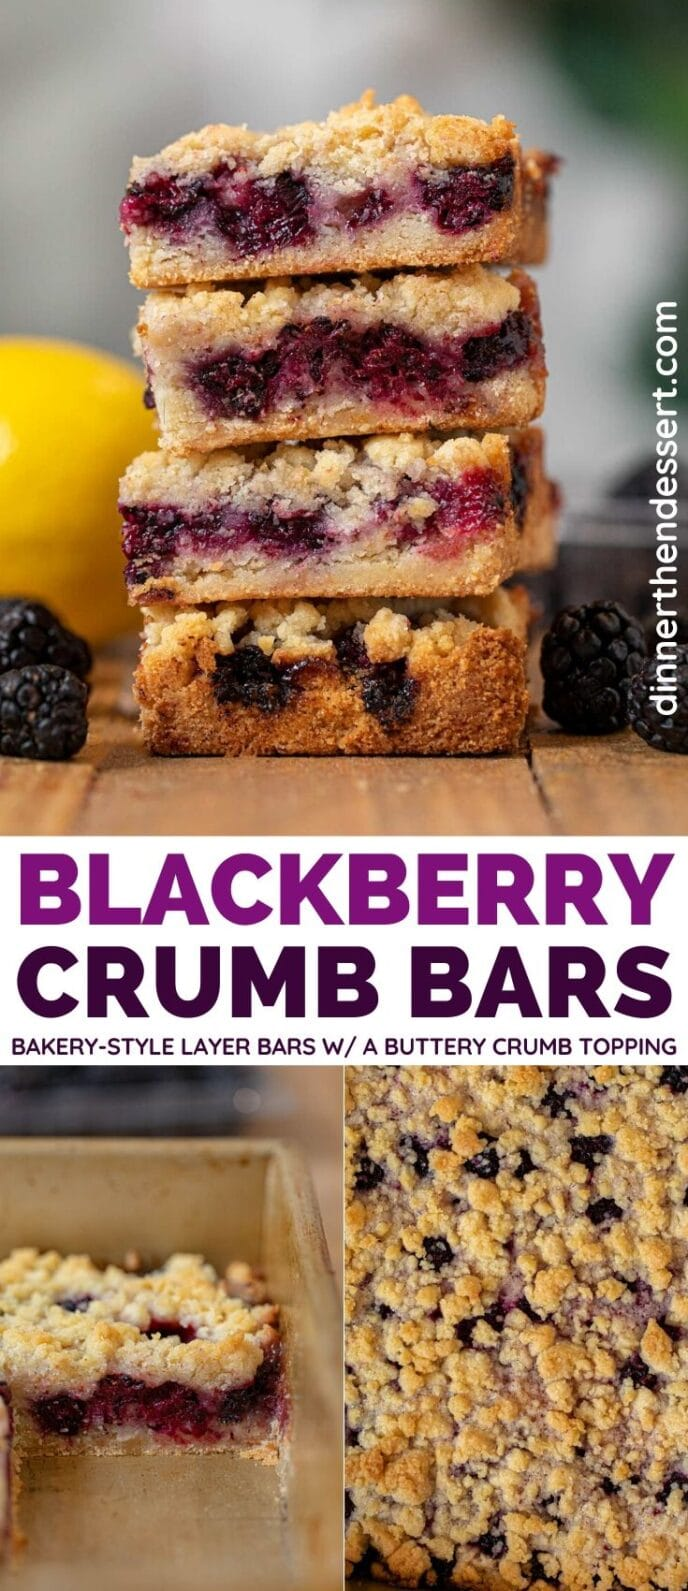 Blackberry Crumb Bars collage